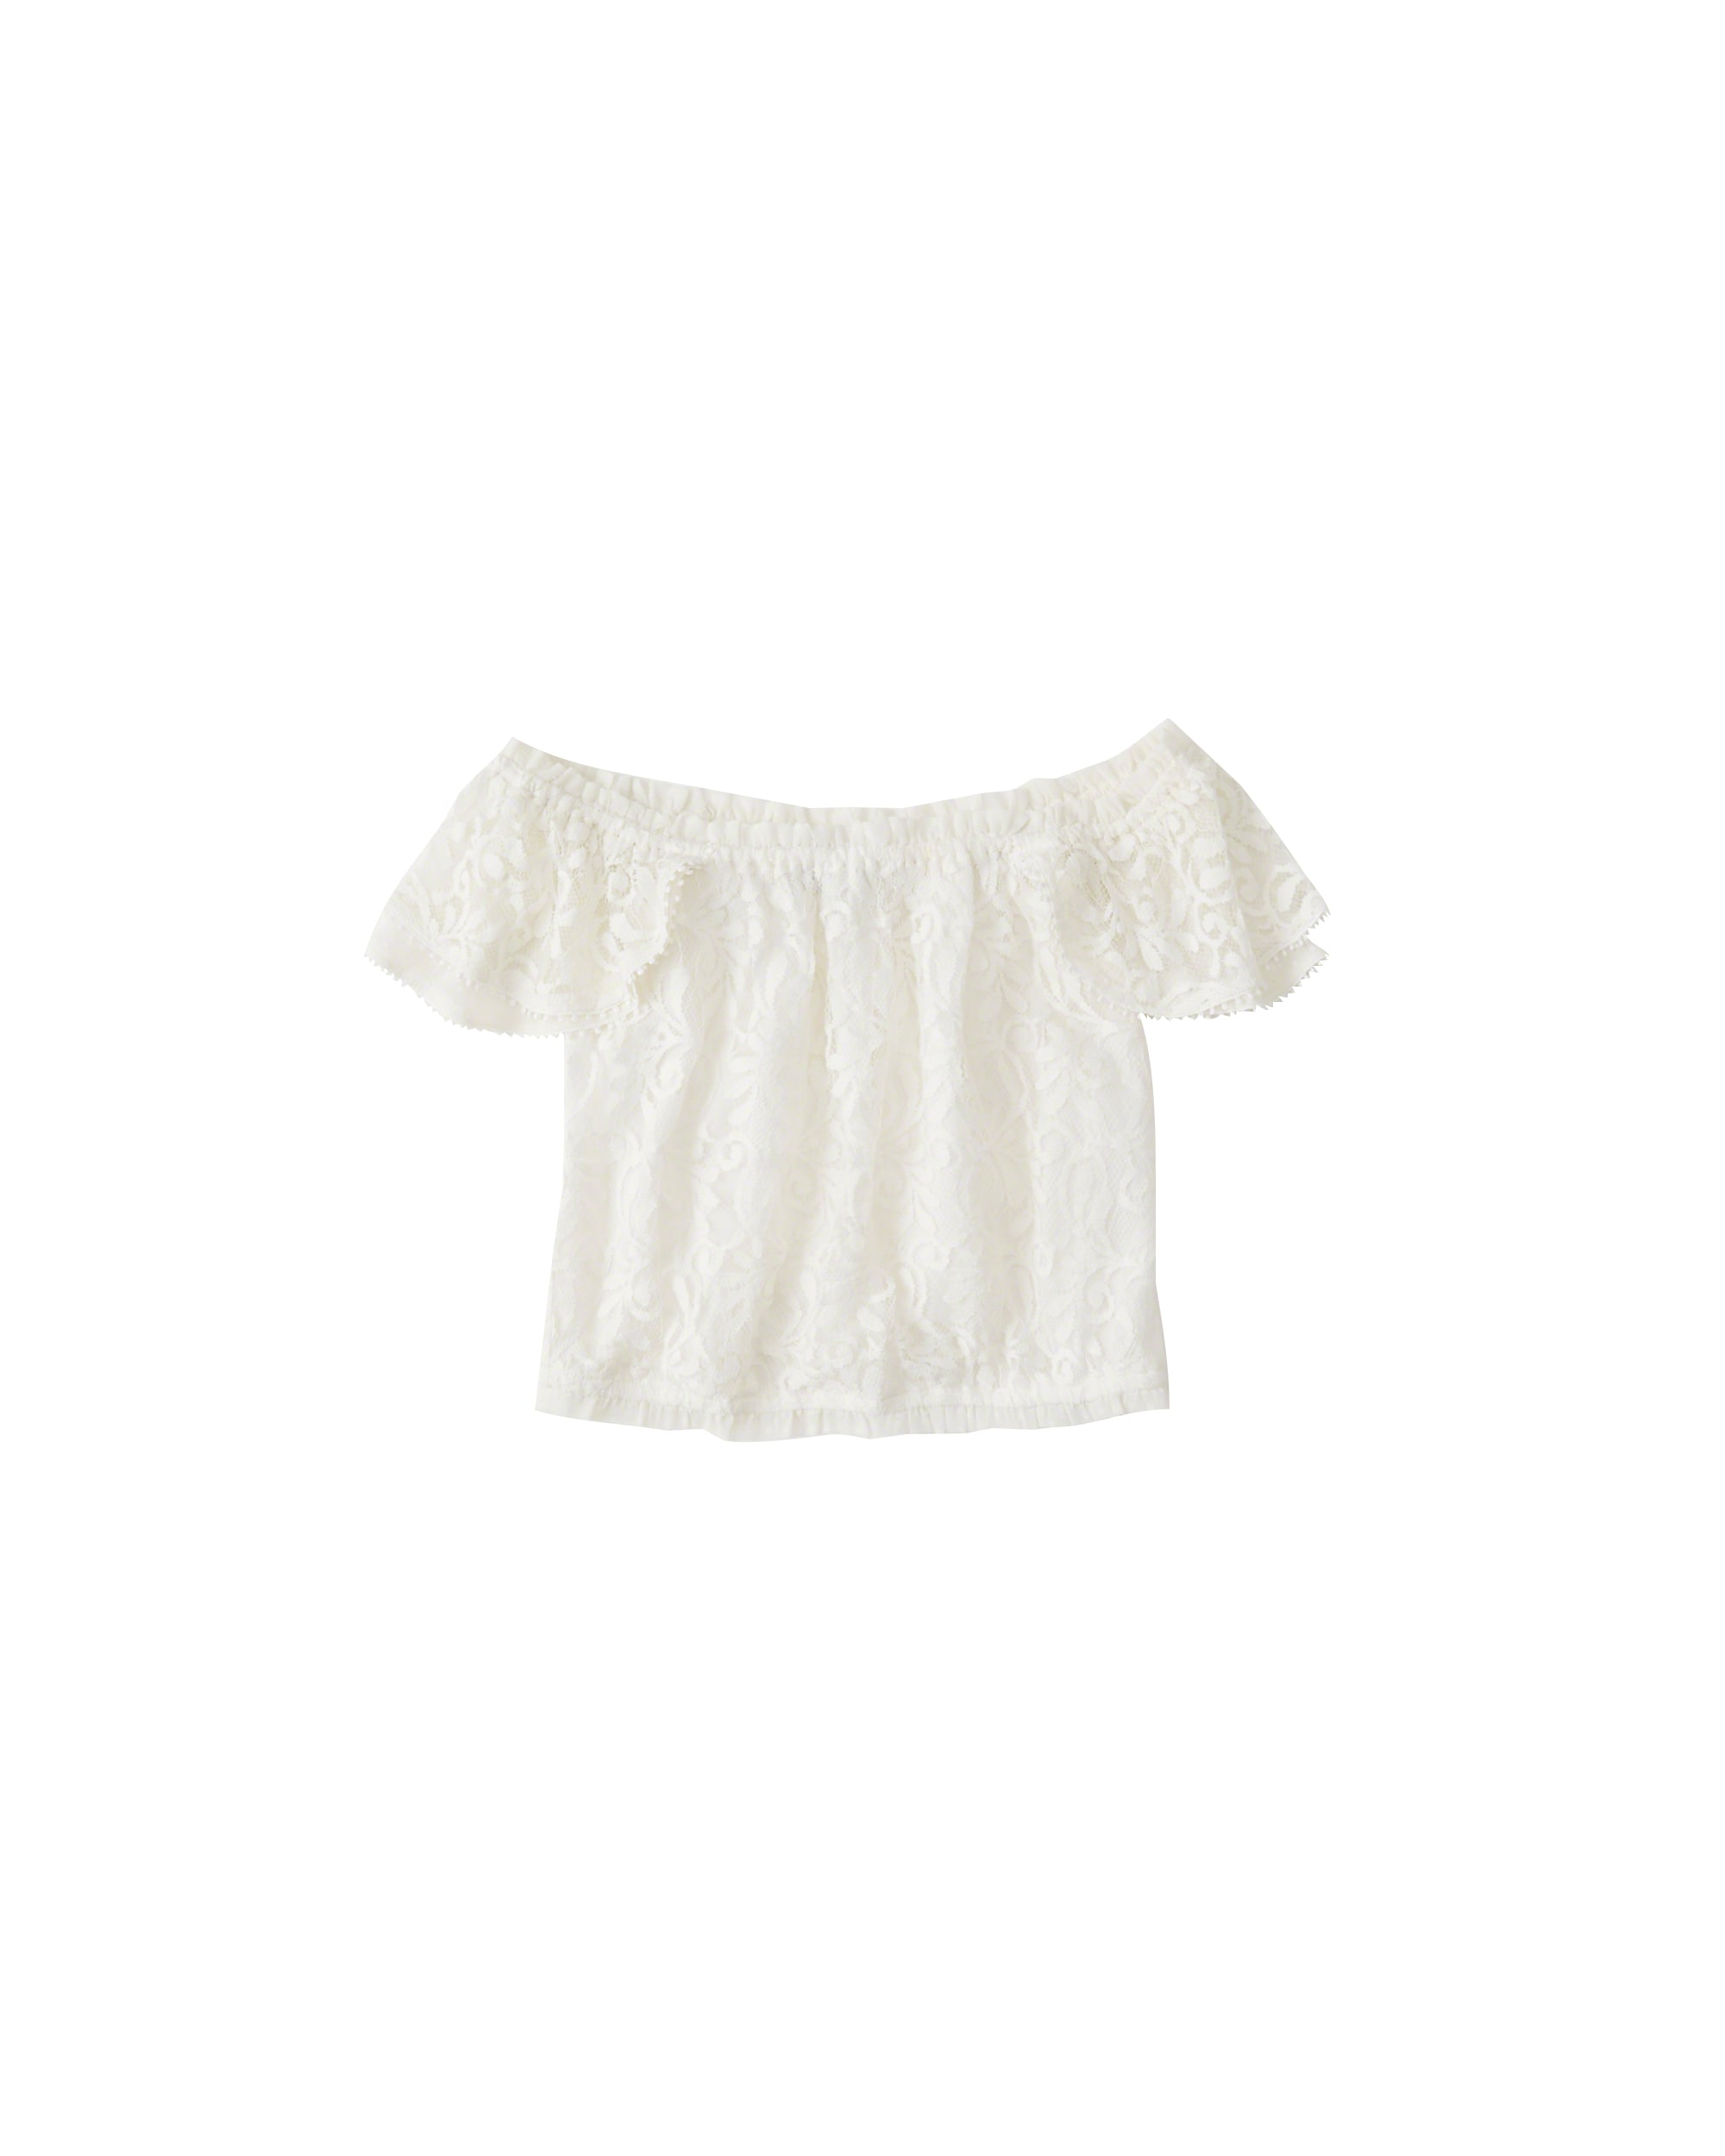 abercrombie & fitch - Shirt ´HF OTS LACE TOP´